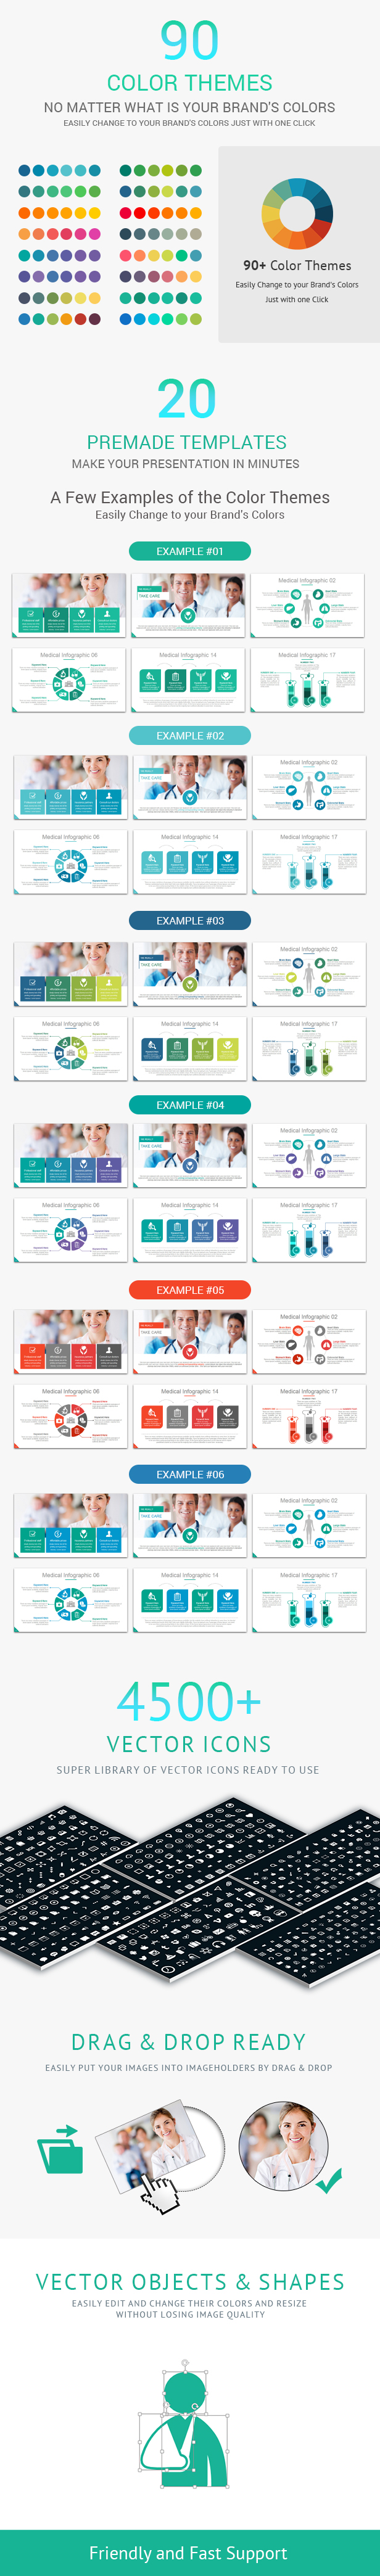 Medical and Healthcare PowerPoint Presentation Template - 1